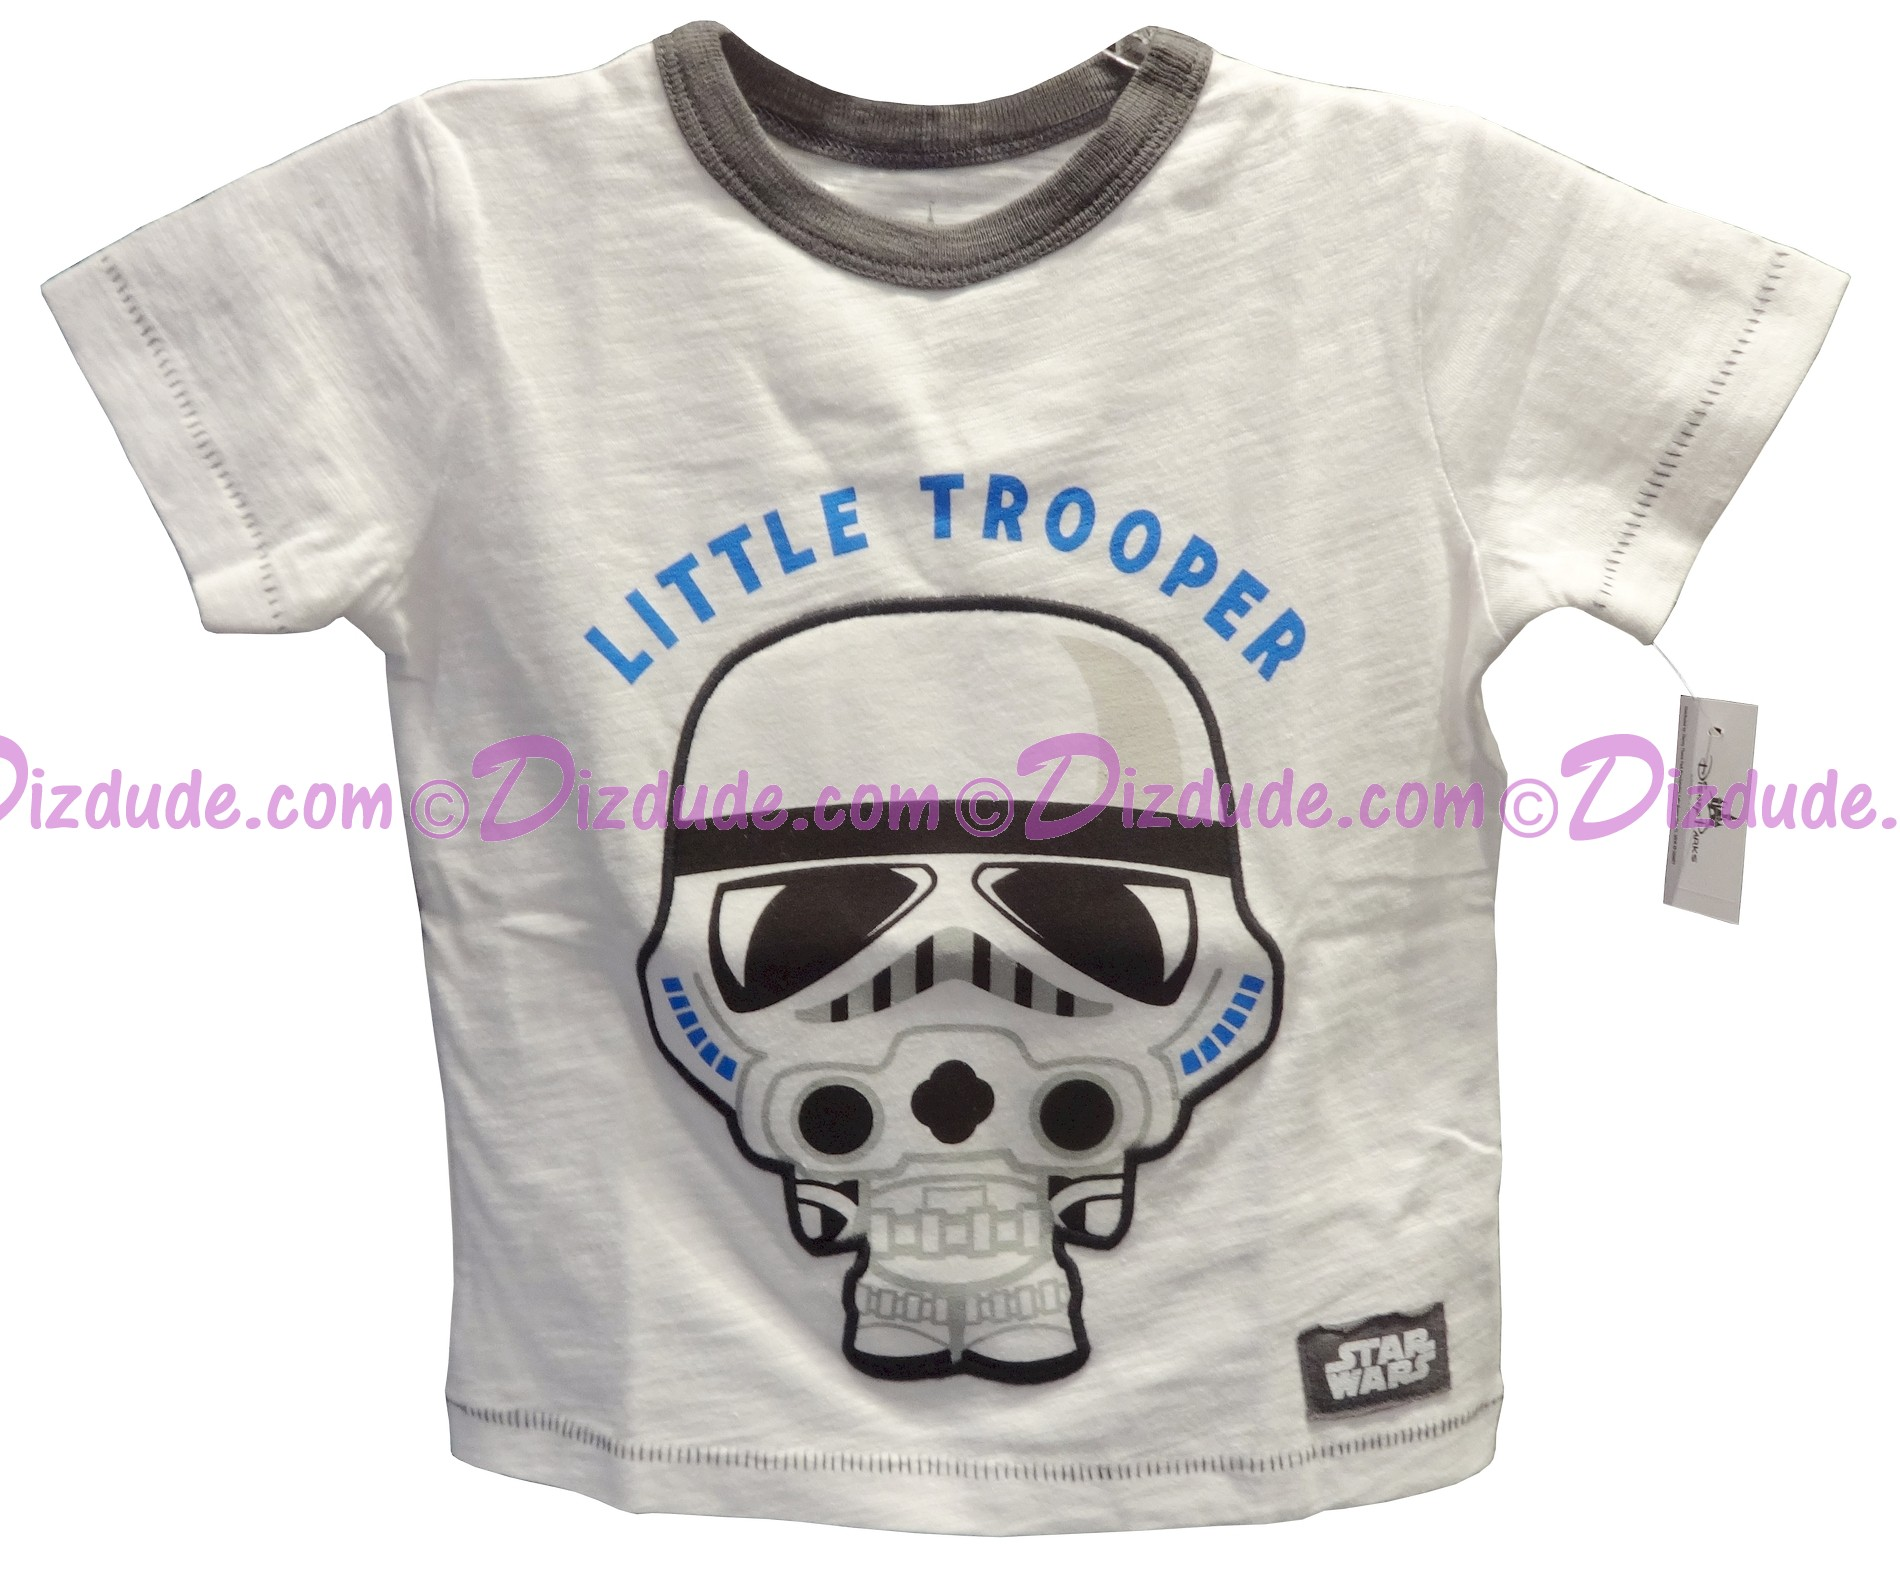 Disney Star Wars Little Trooper Toddler T-Shirt (Tshirt, T shirt or Tee) © Dizdude.com